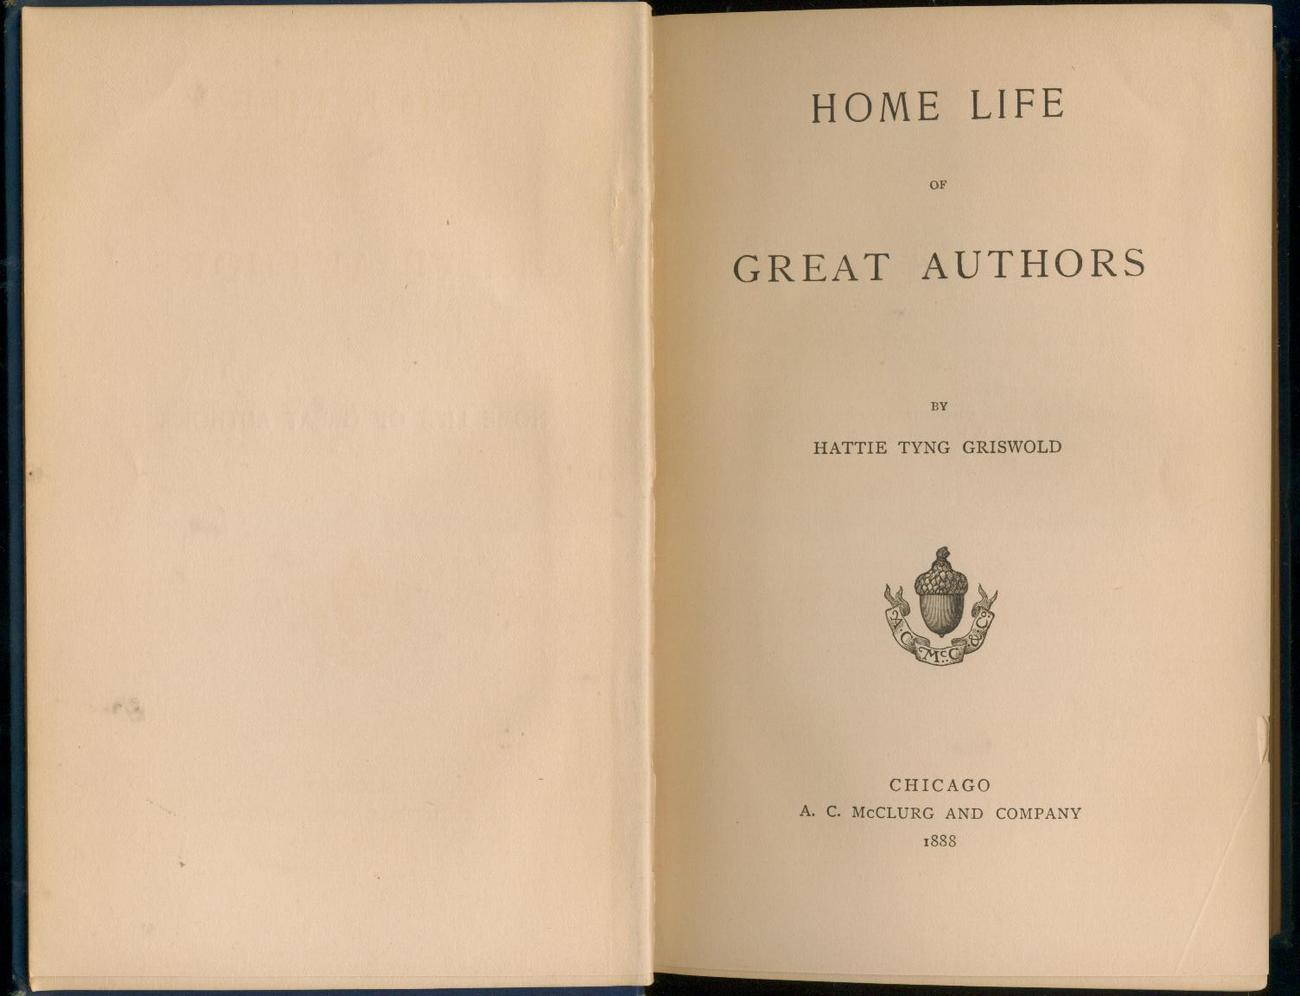 Griswold - HOME LIFE OF GREAT AUTHORS - 1888  -  very scarce early printing